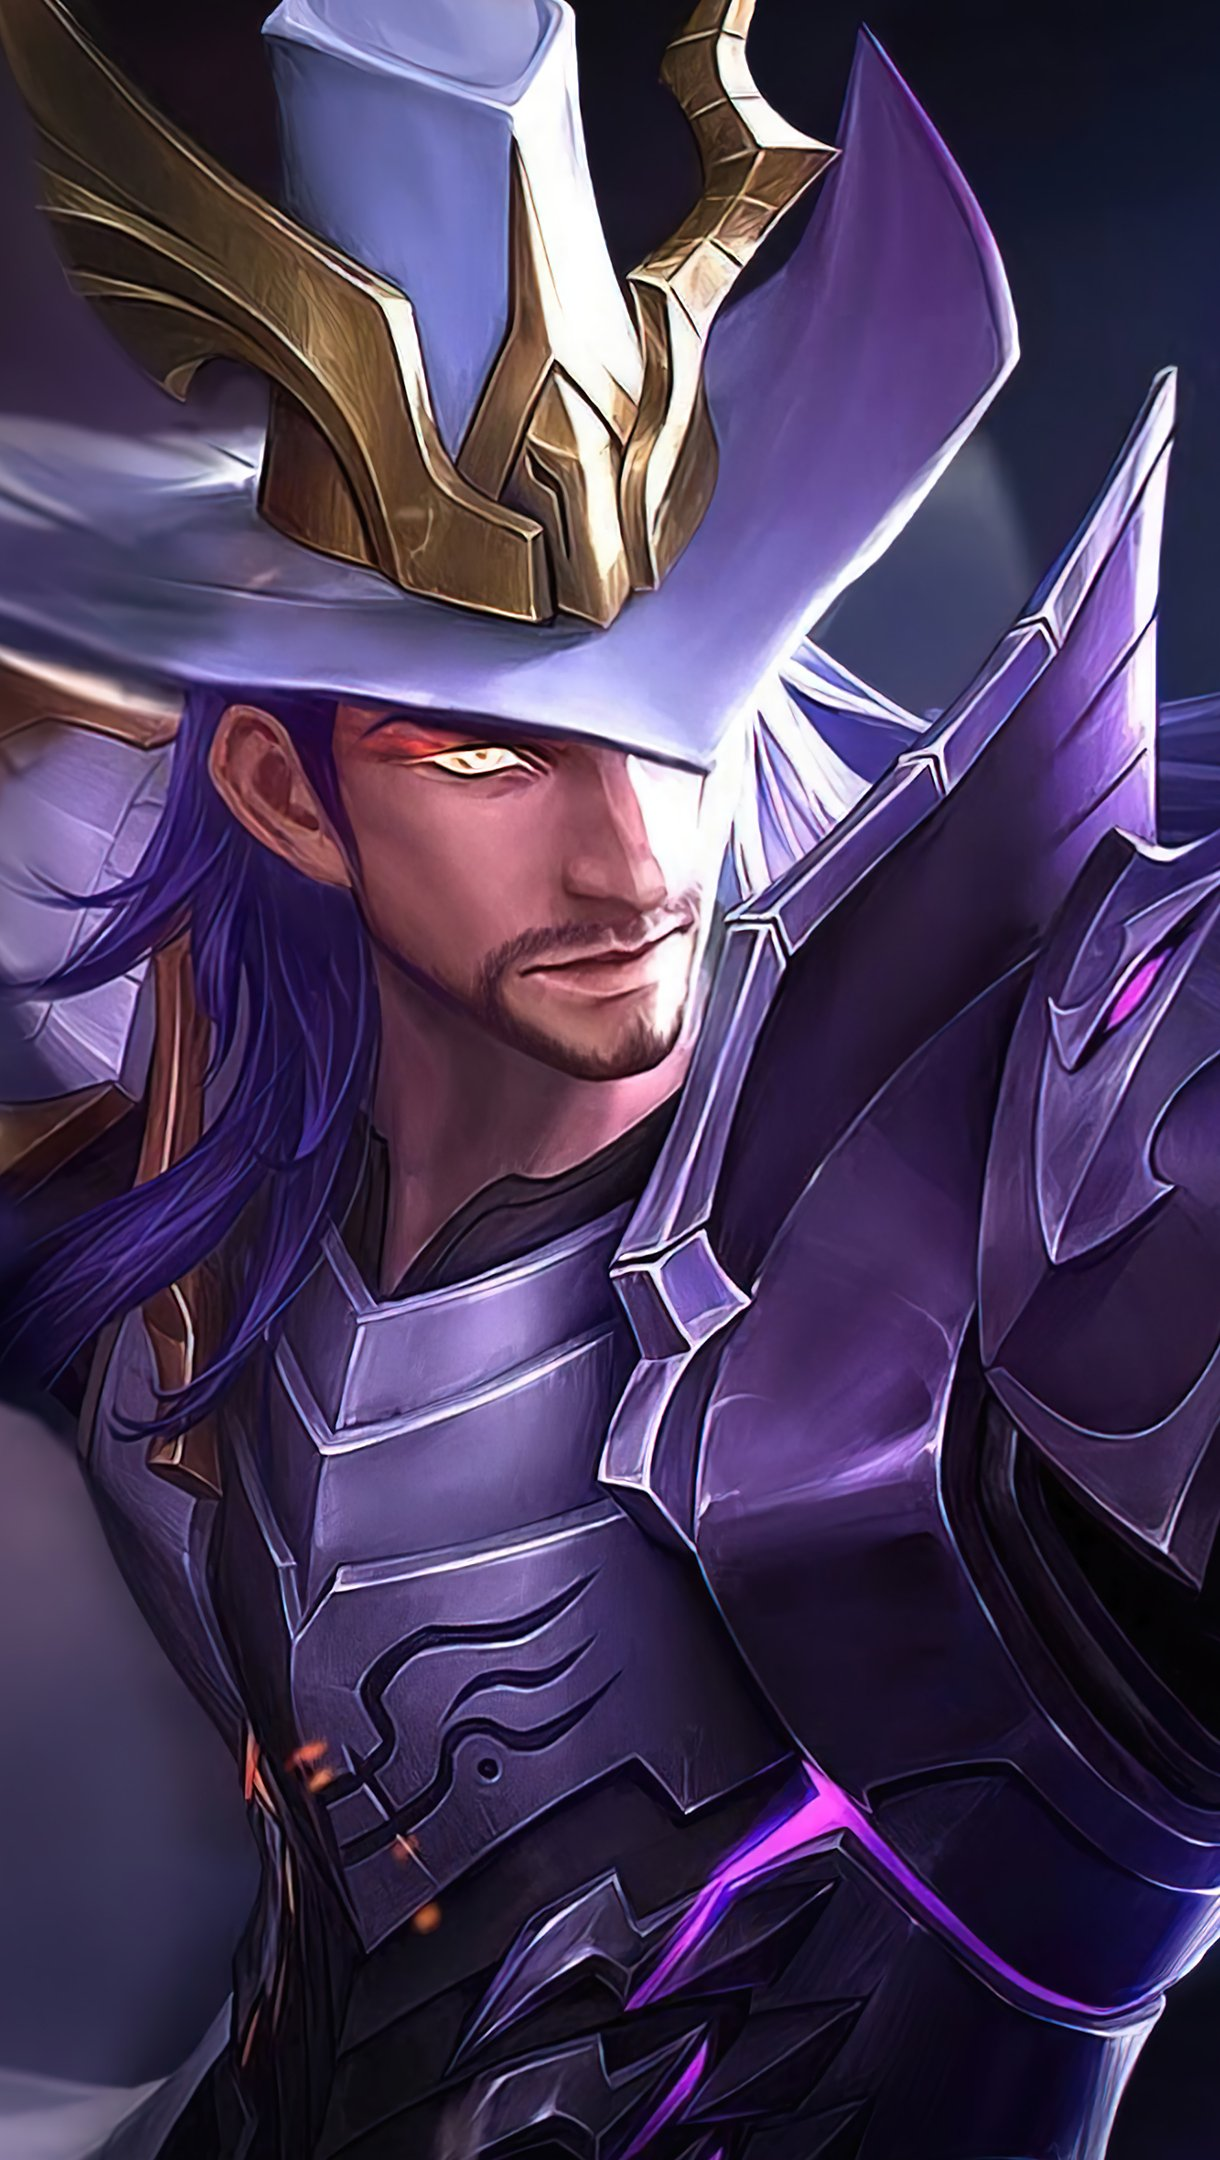 Fondos de pantalla Clint Shadow Omen League of Legends Vertical